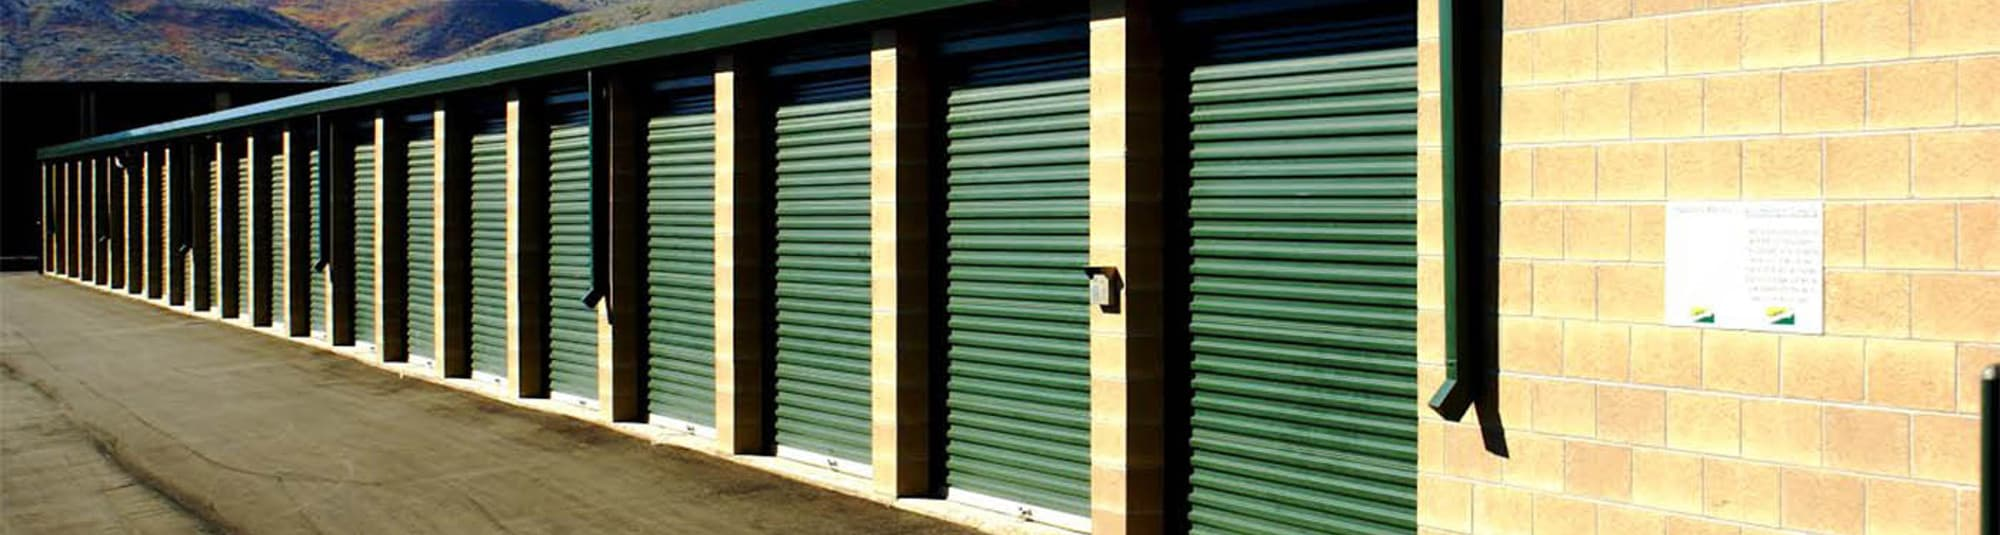 Good Nice Bountiful Storage #5: Home Storage Units In Ideas Storage Units In  Contractors .